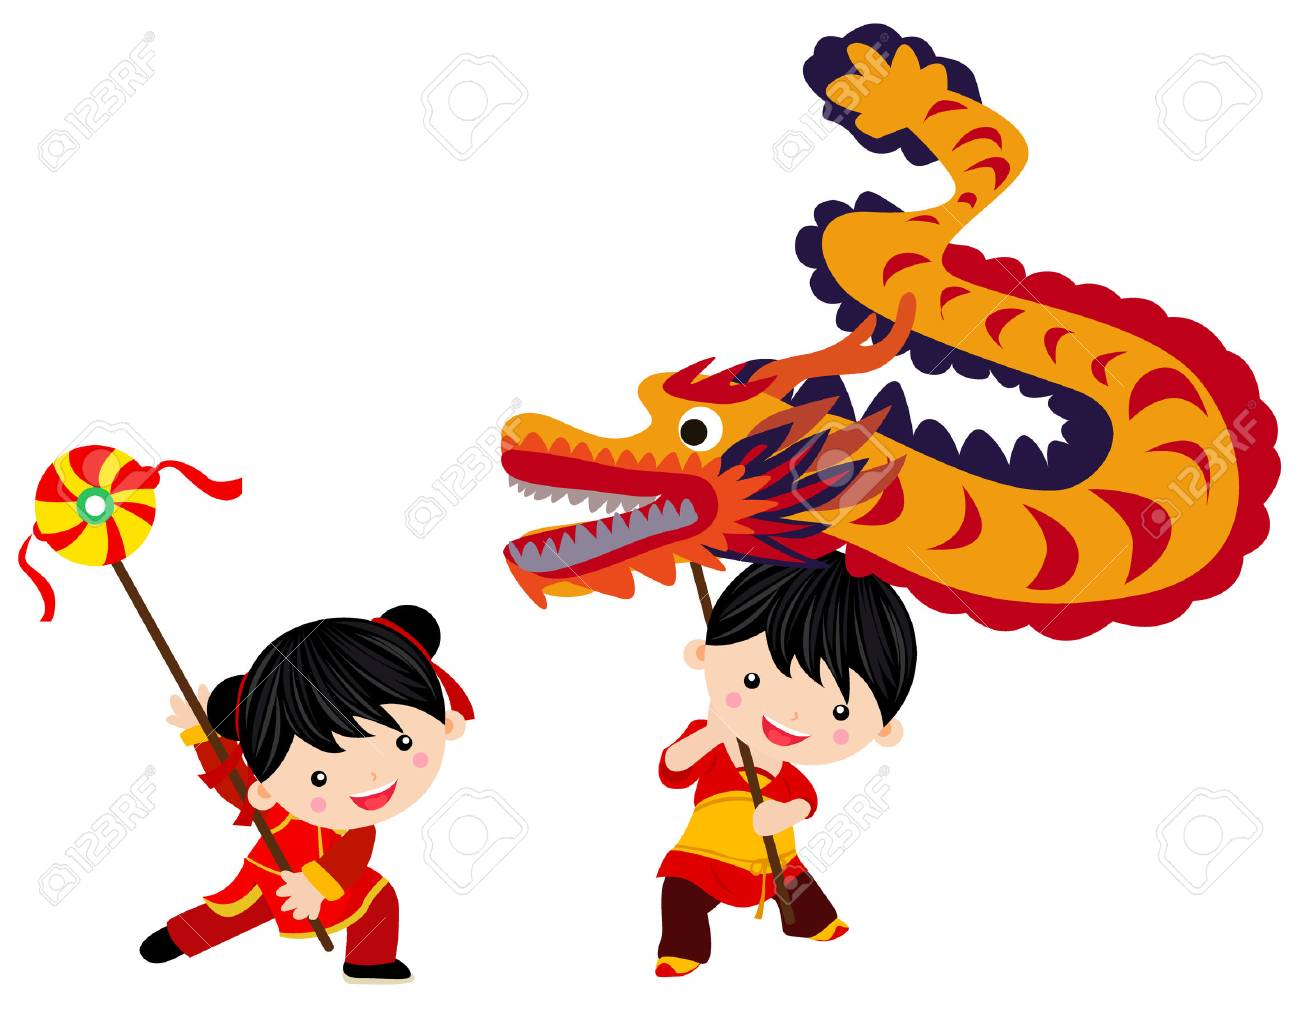 Chinese new year festival/Dragon dance.